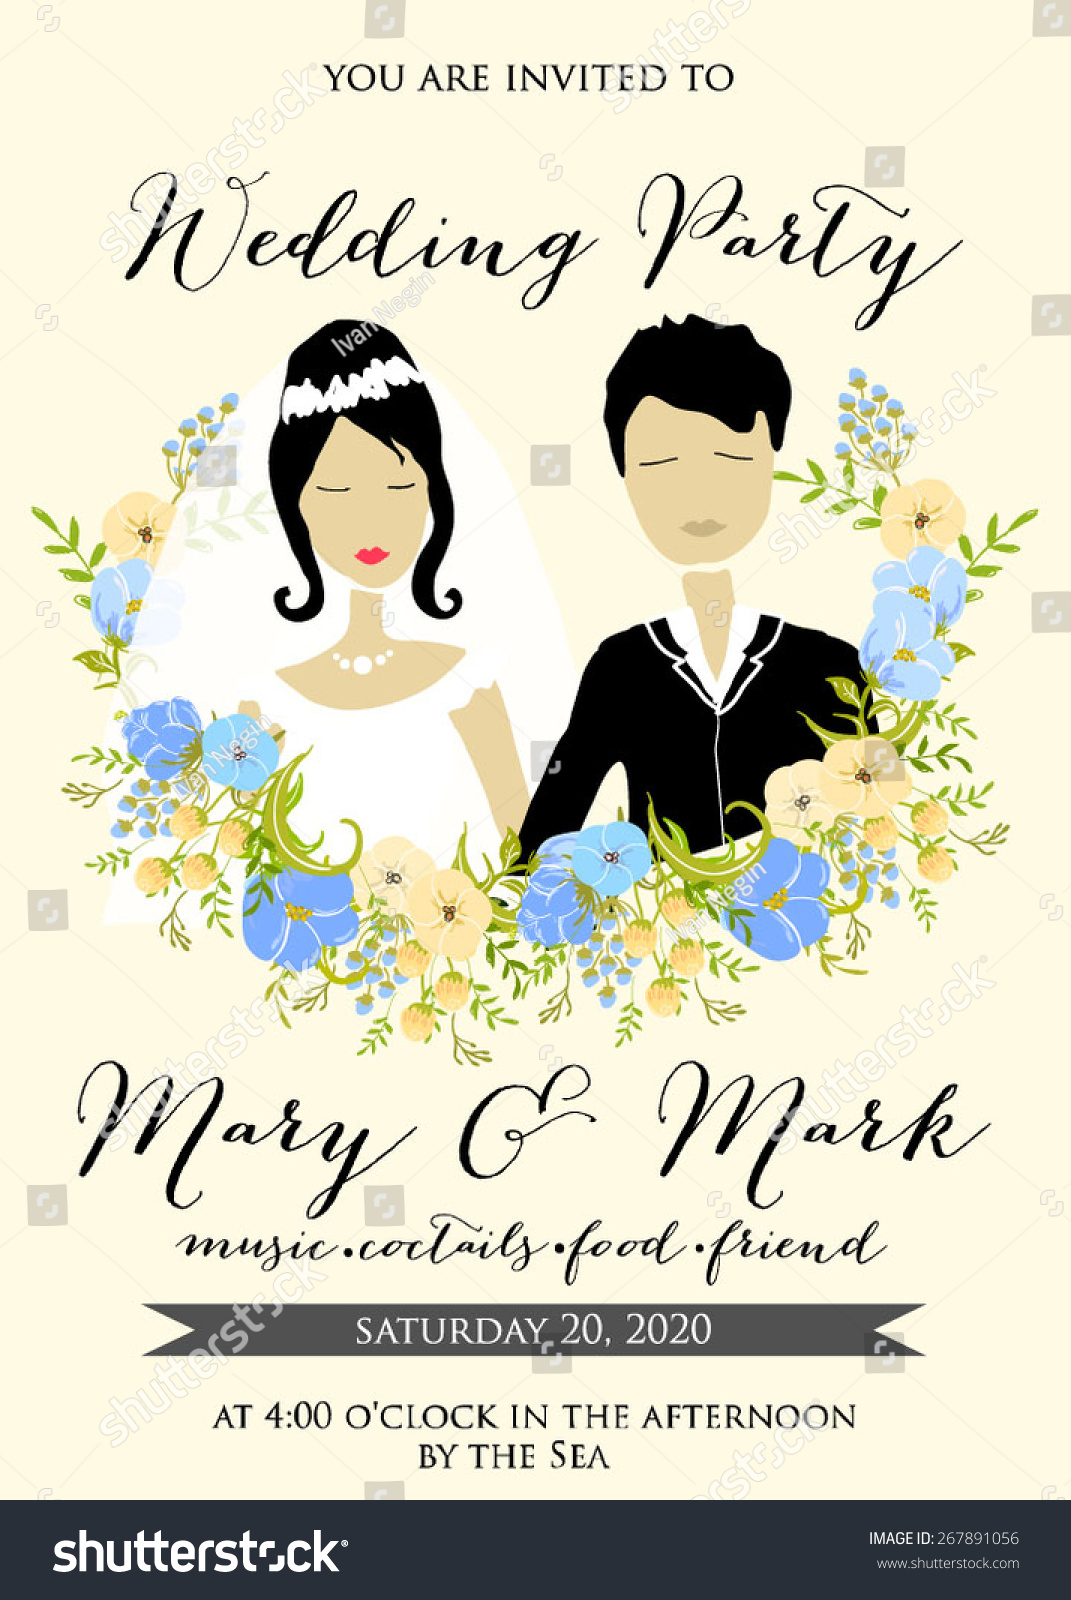 Wedding Invitation Cartoon Couple Groom Bride Stock Vector (Royalty ...